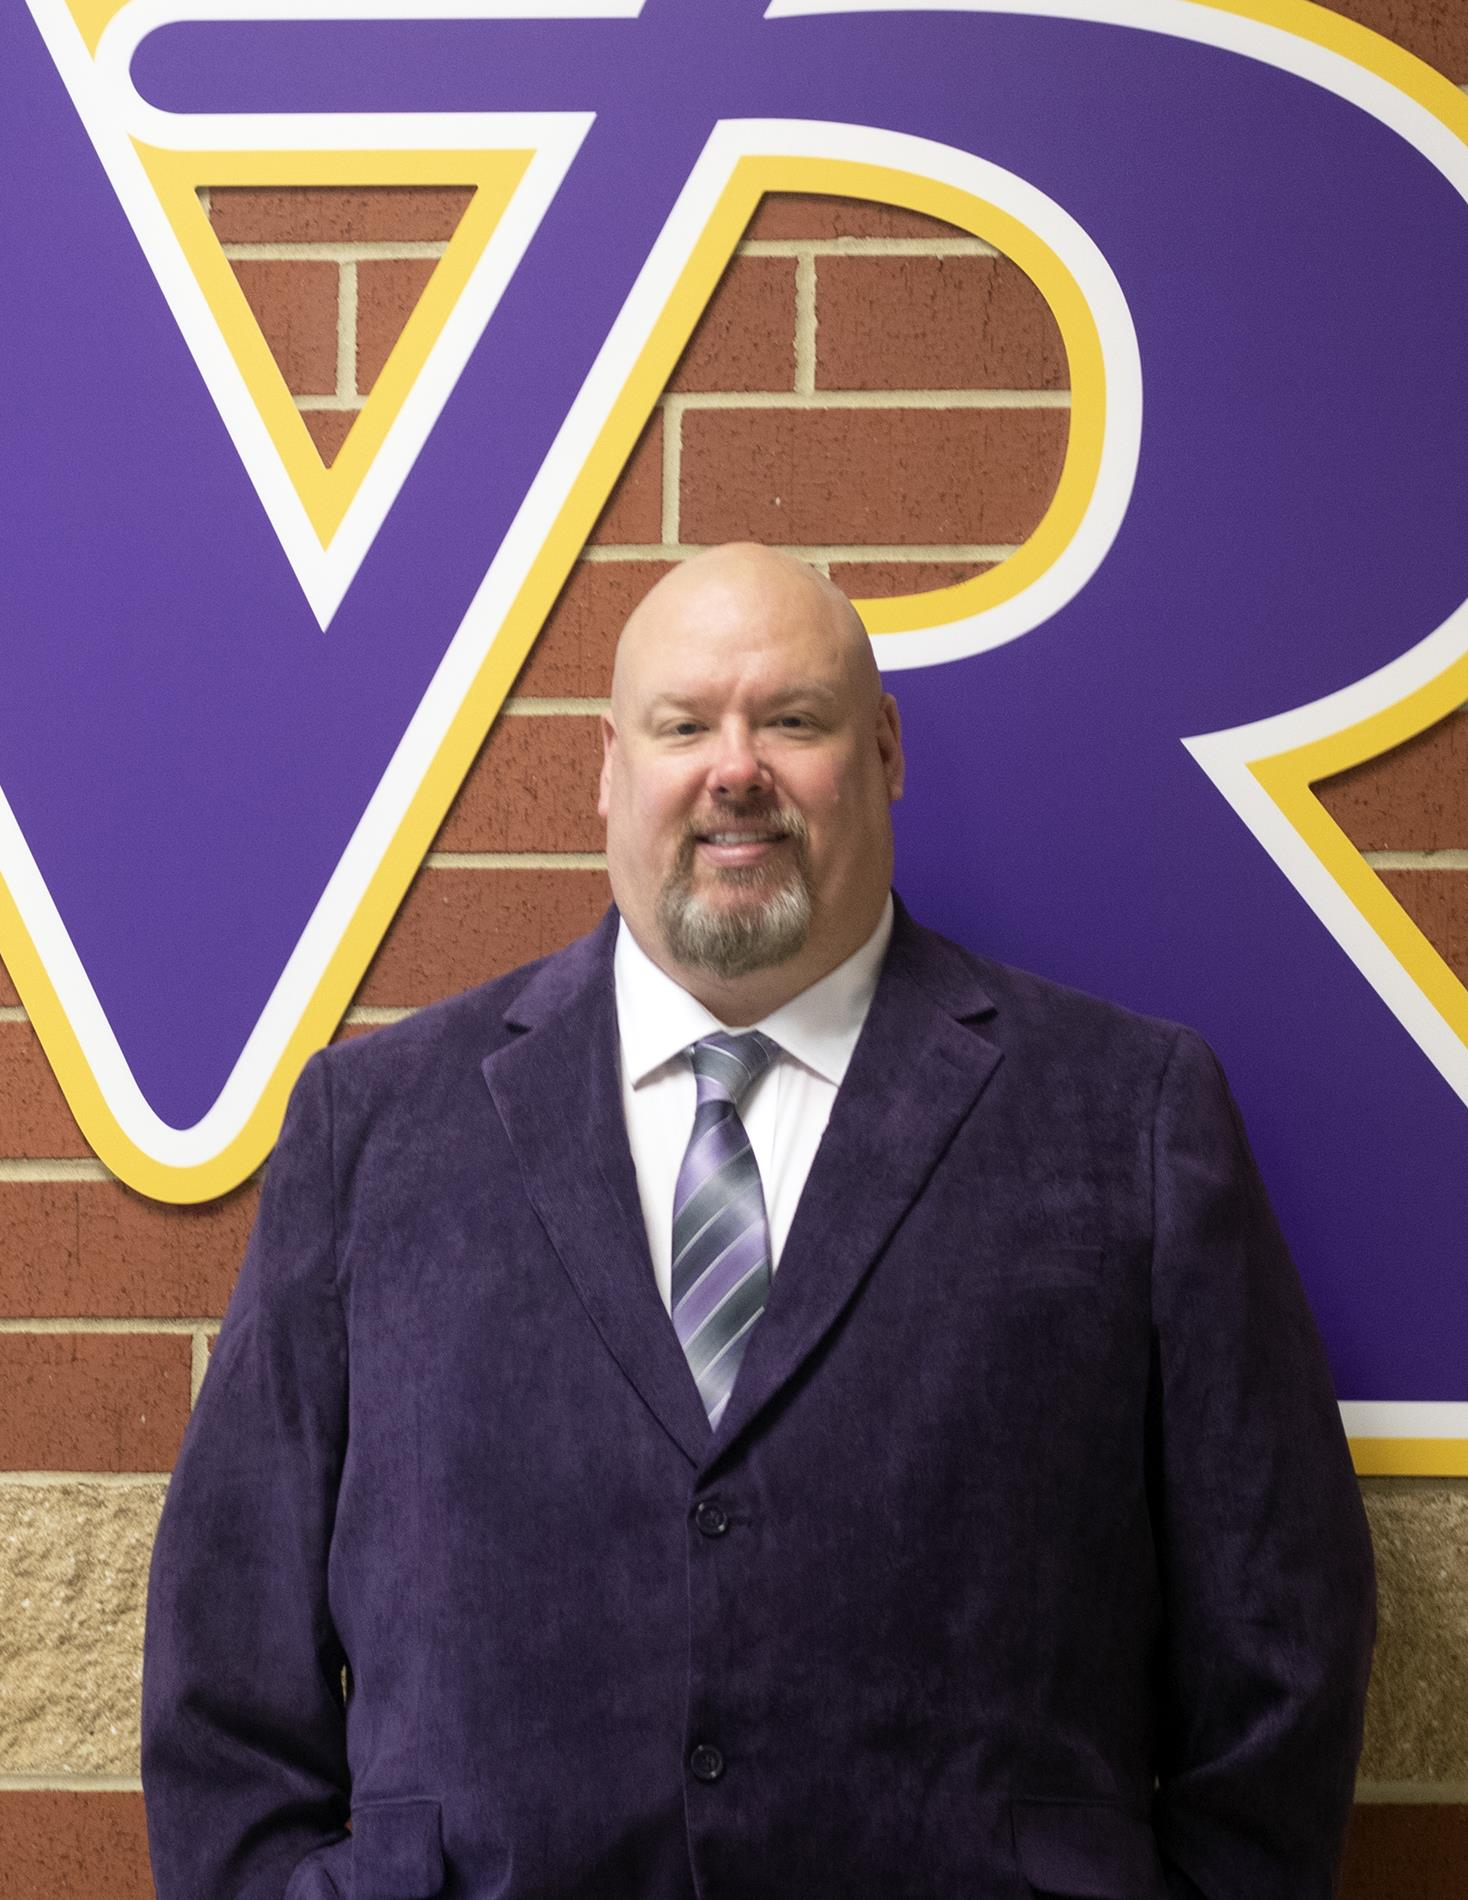 Shawn Bissell, Assistant Principal